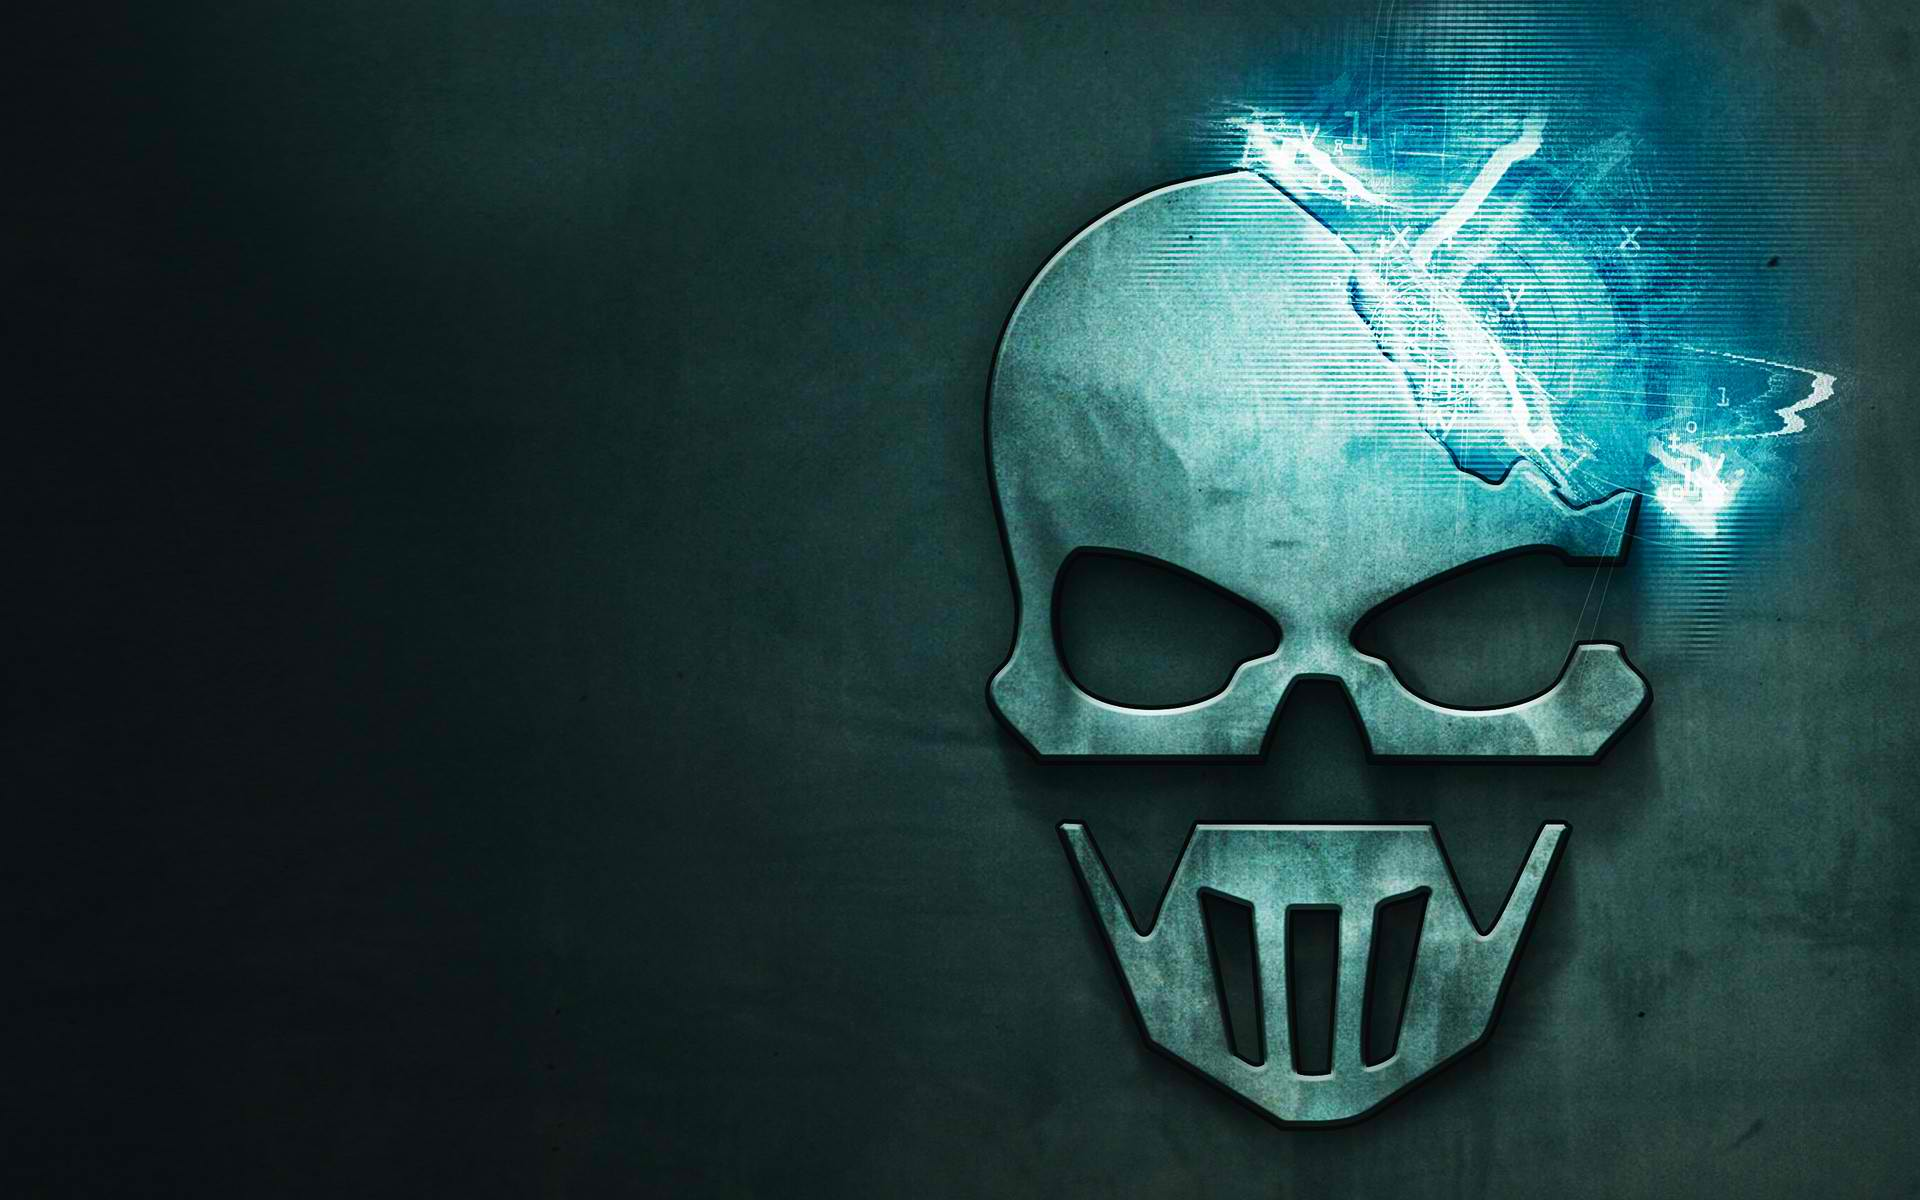 wallpaper4mecomimageswallpapersghost recon future soldier w1jpeg 1920x1200